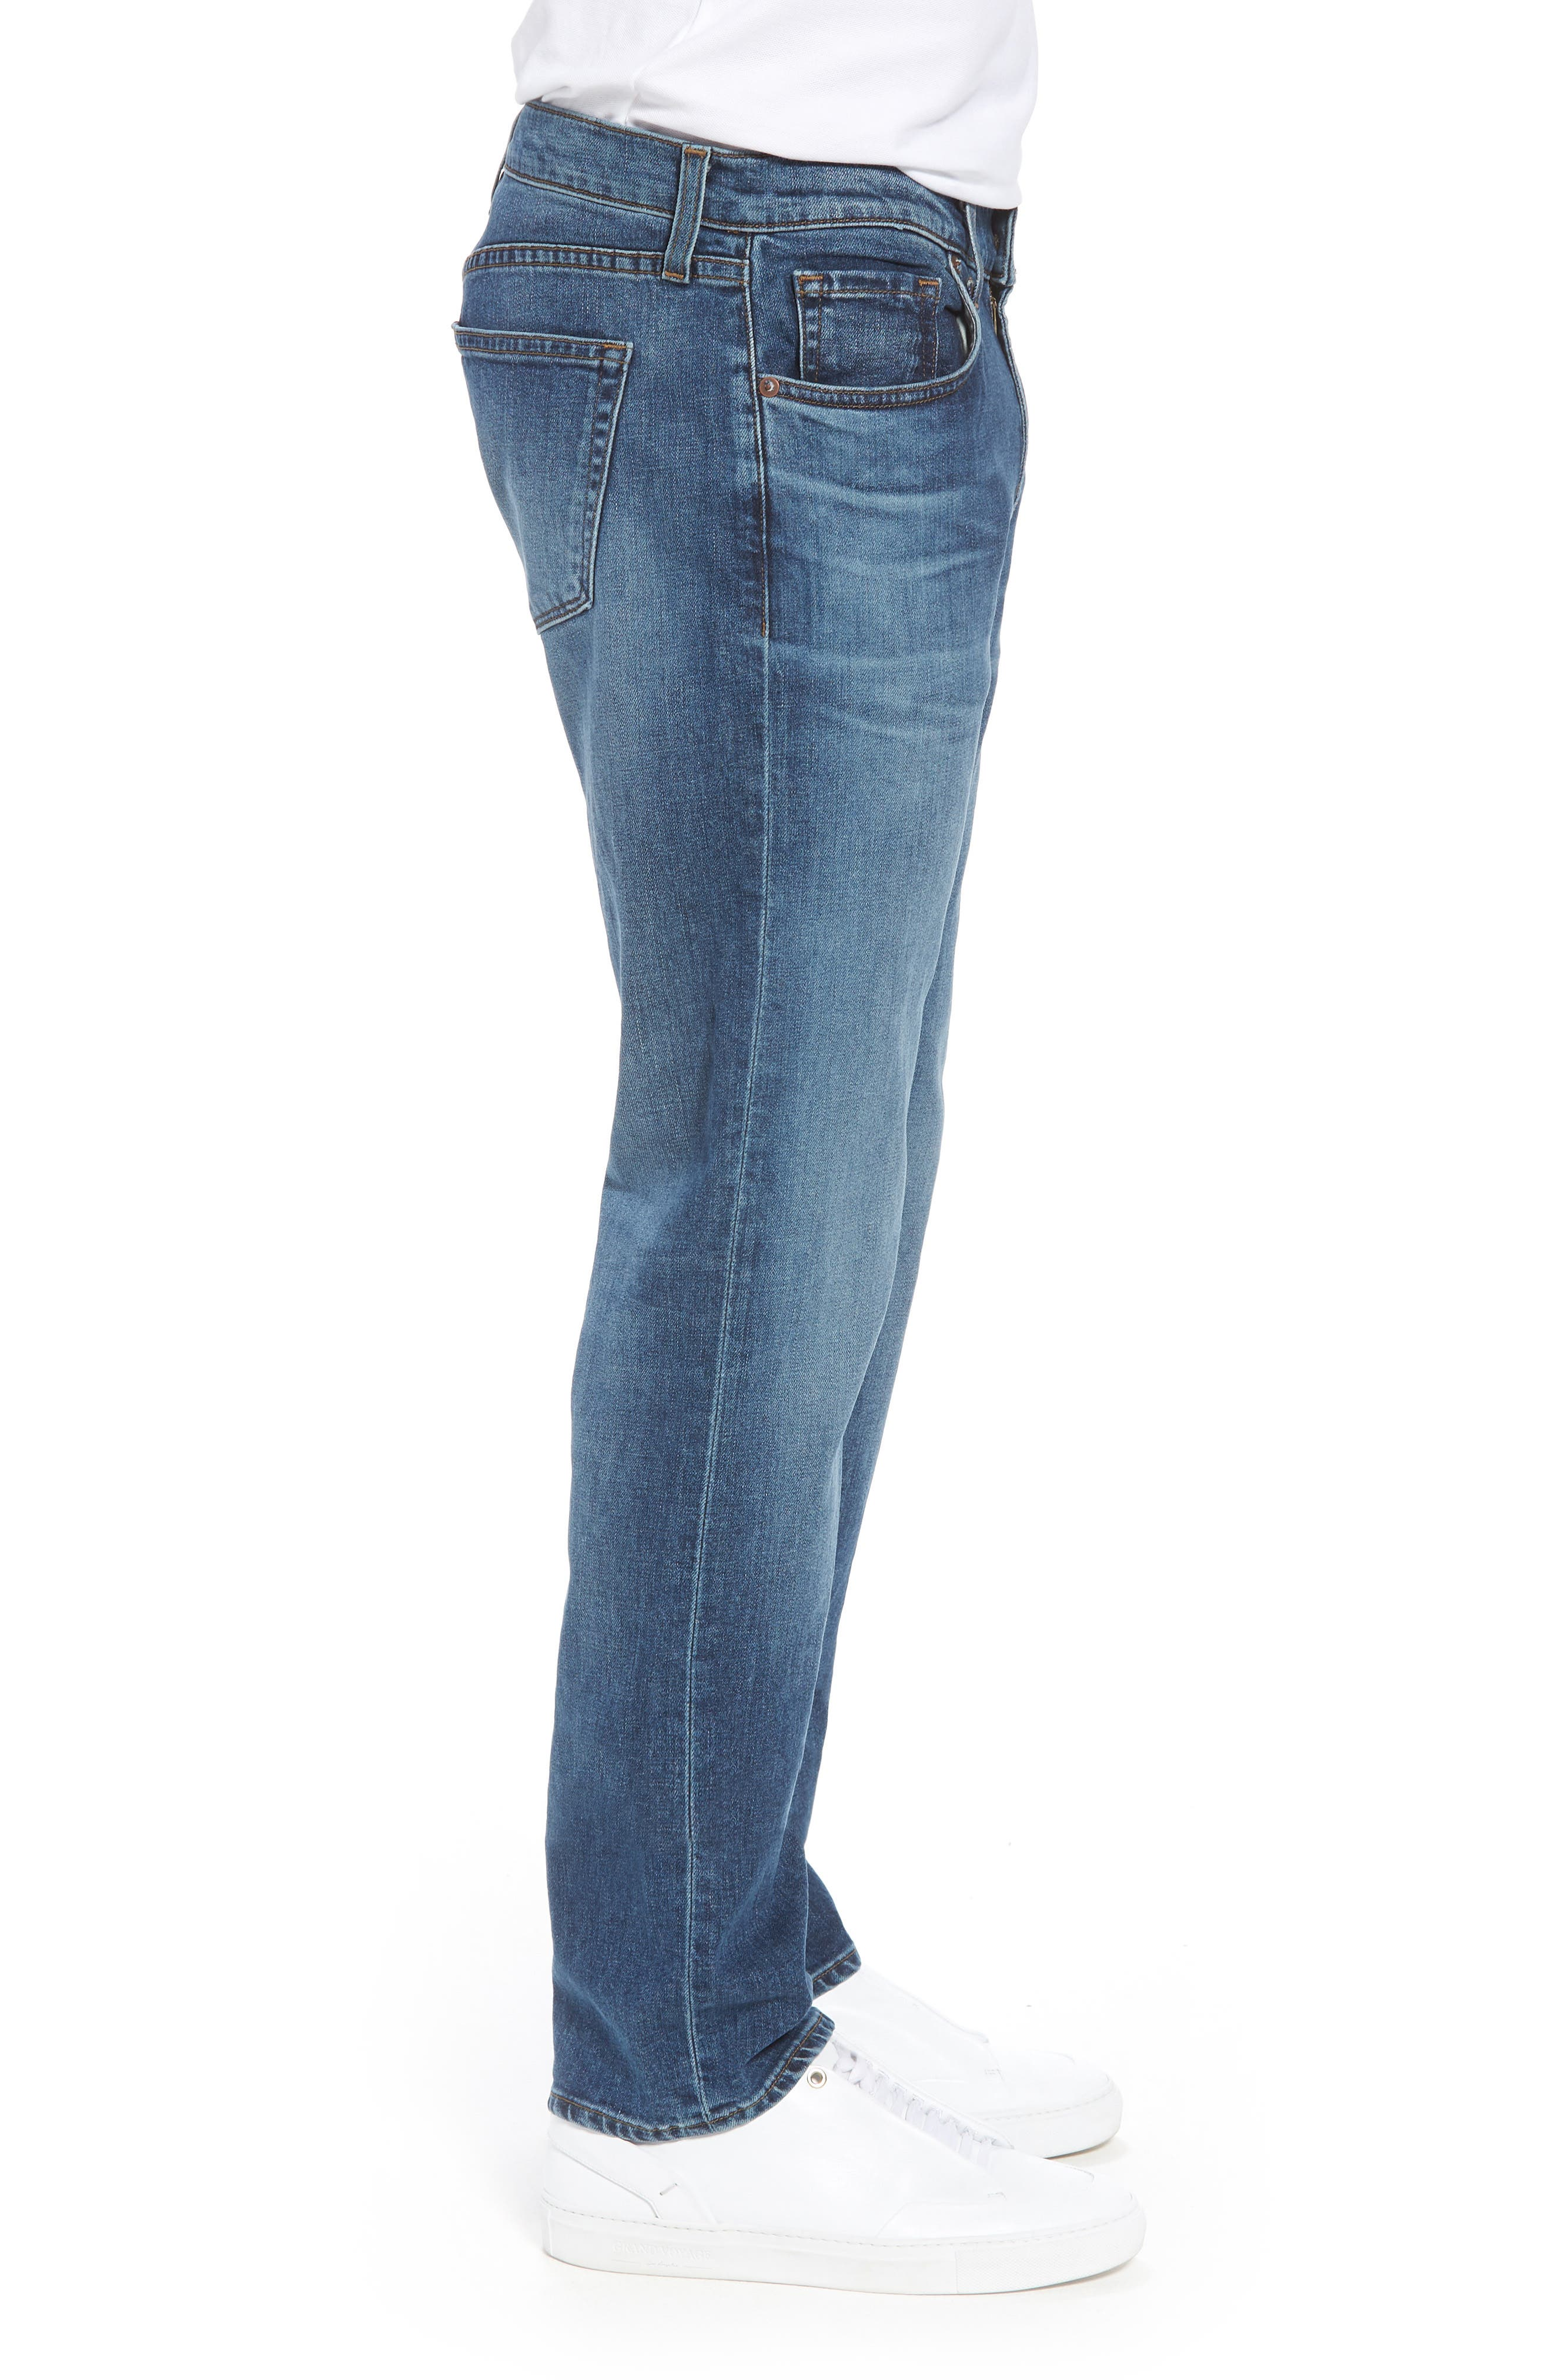 Kane Slim Straight Leg Jeans,                             Alternate thumbnail 3, color,                             Barva